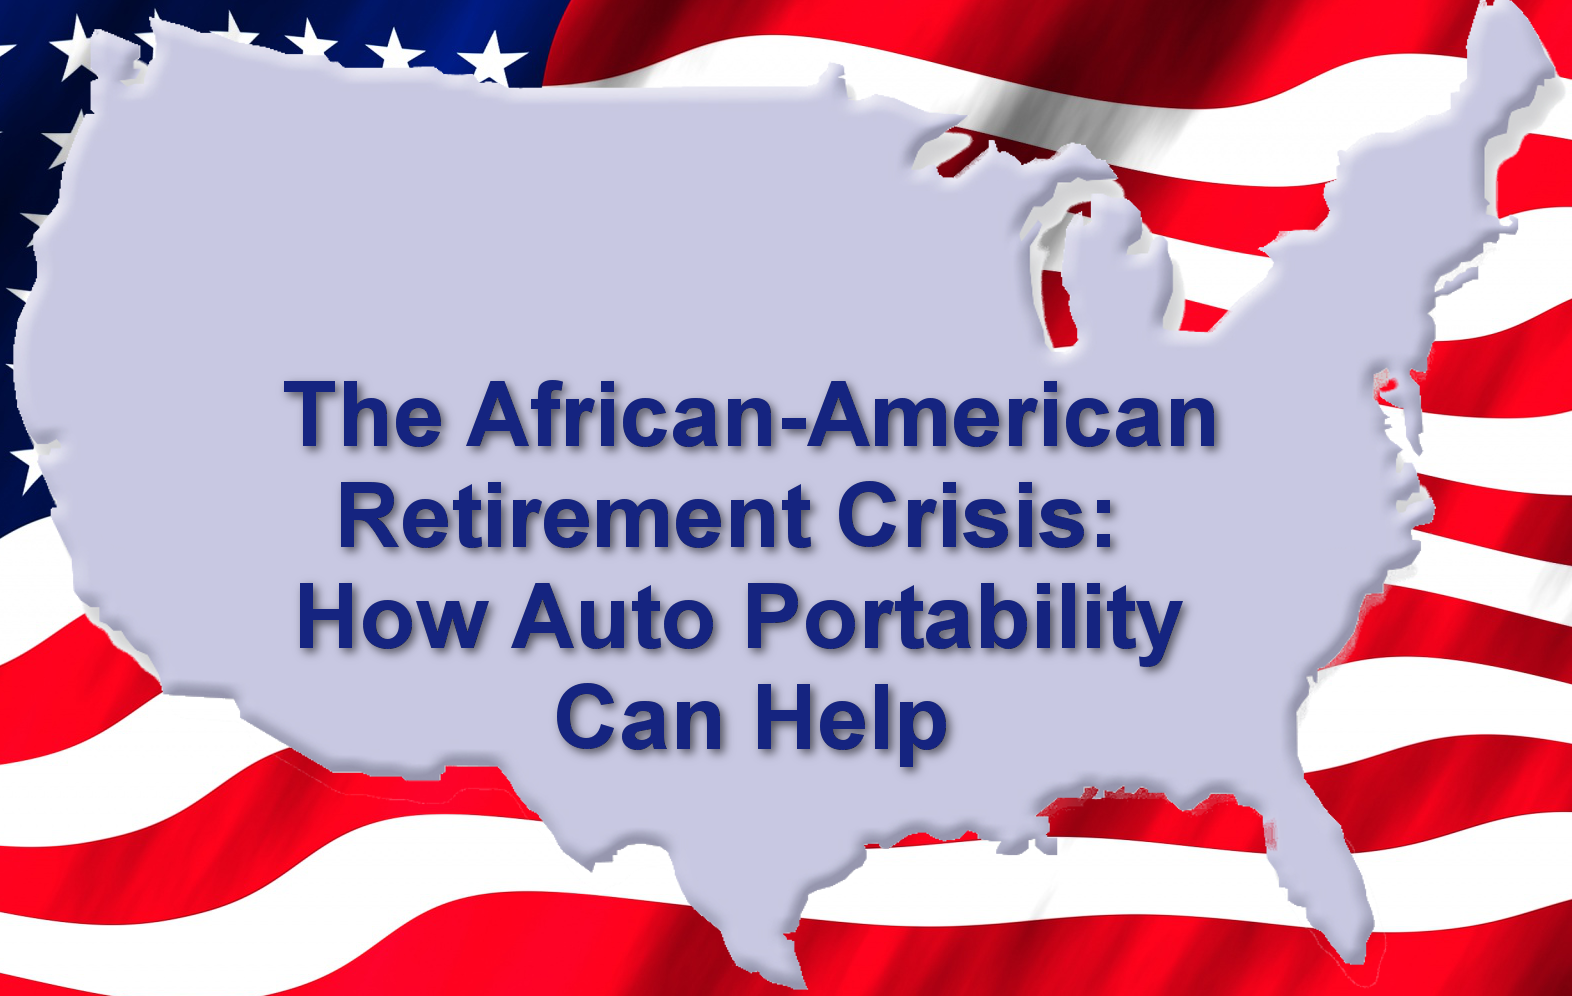 The African-American Retirement Crisis: How Auto Portability Can Help